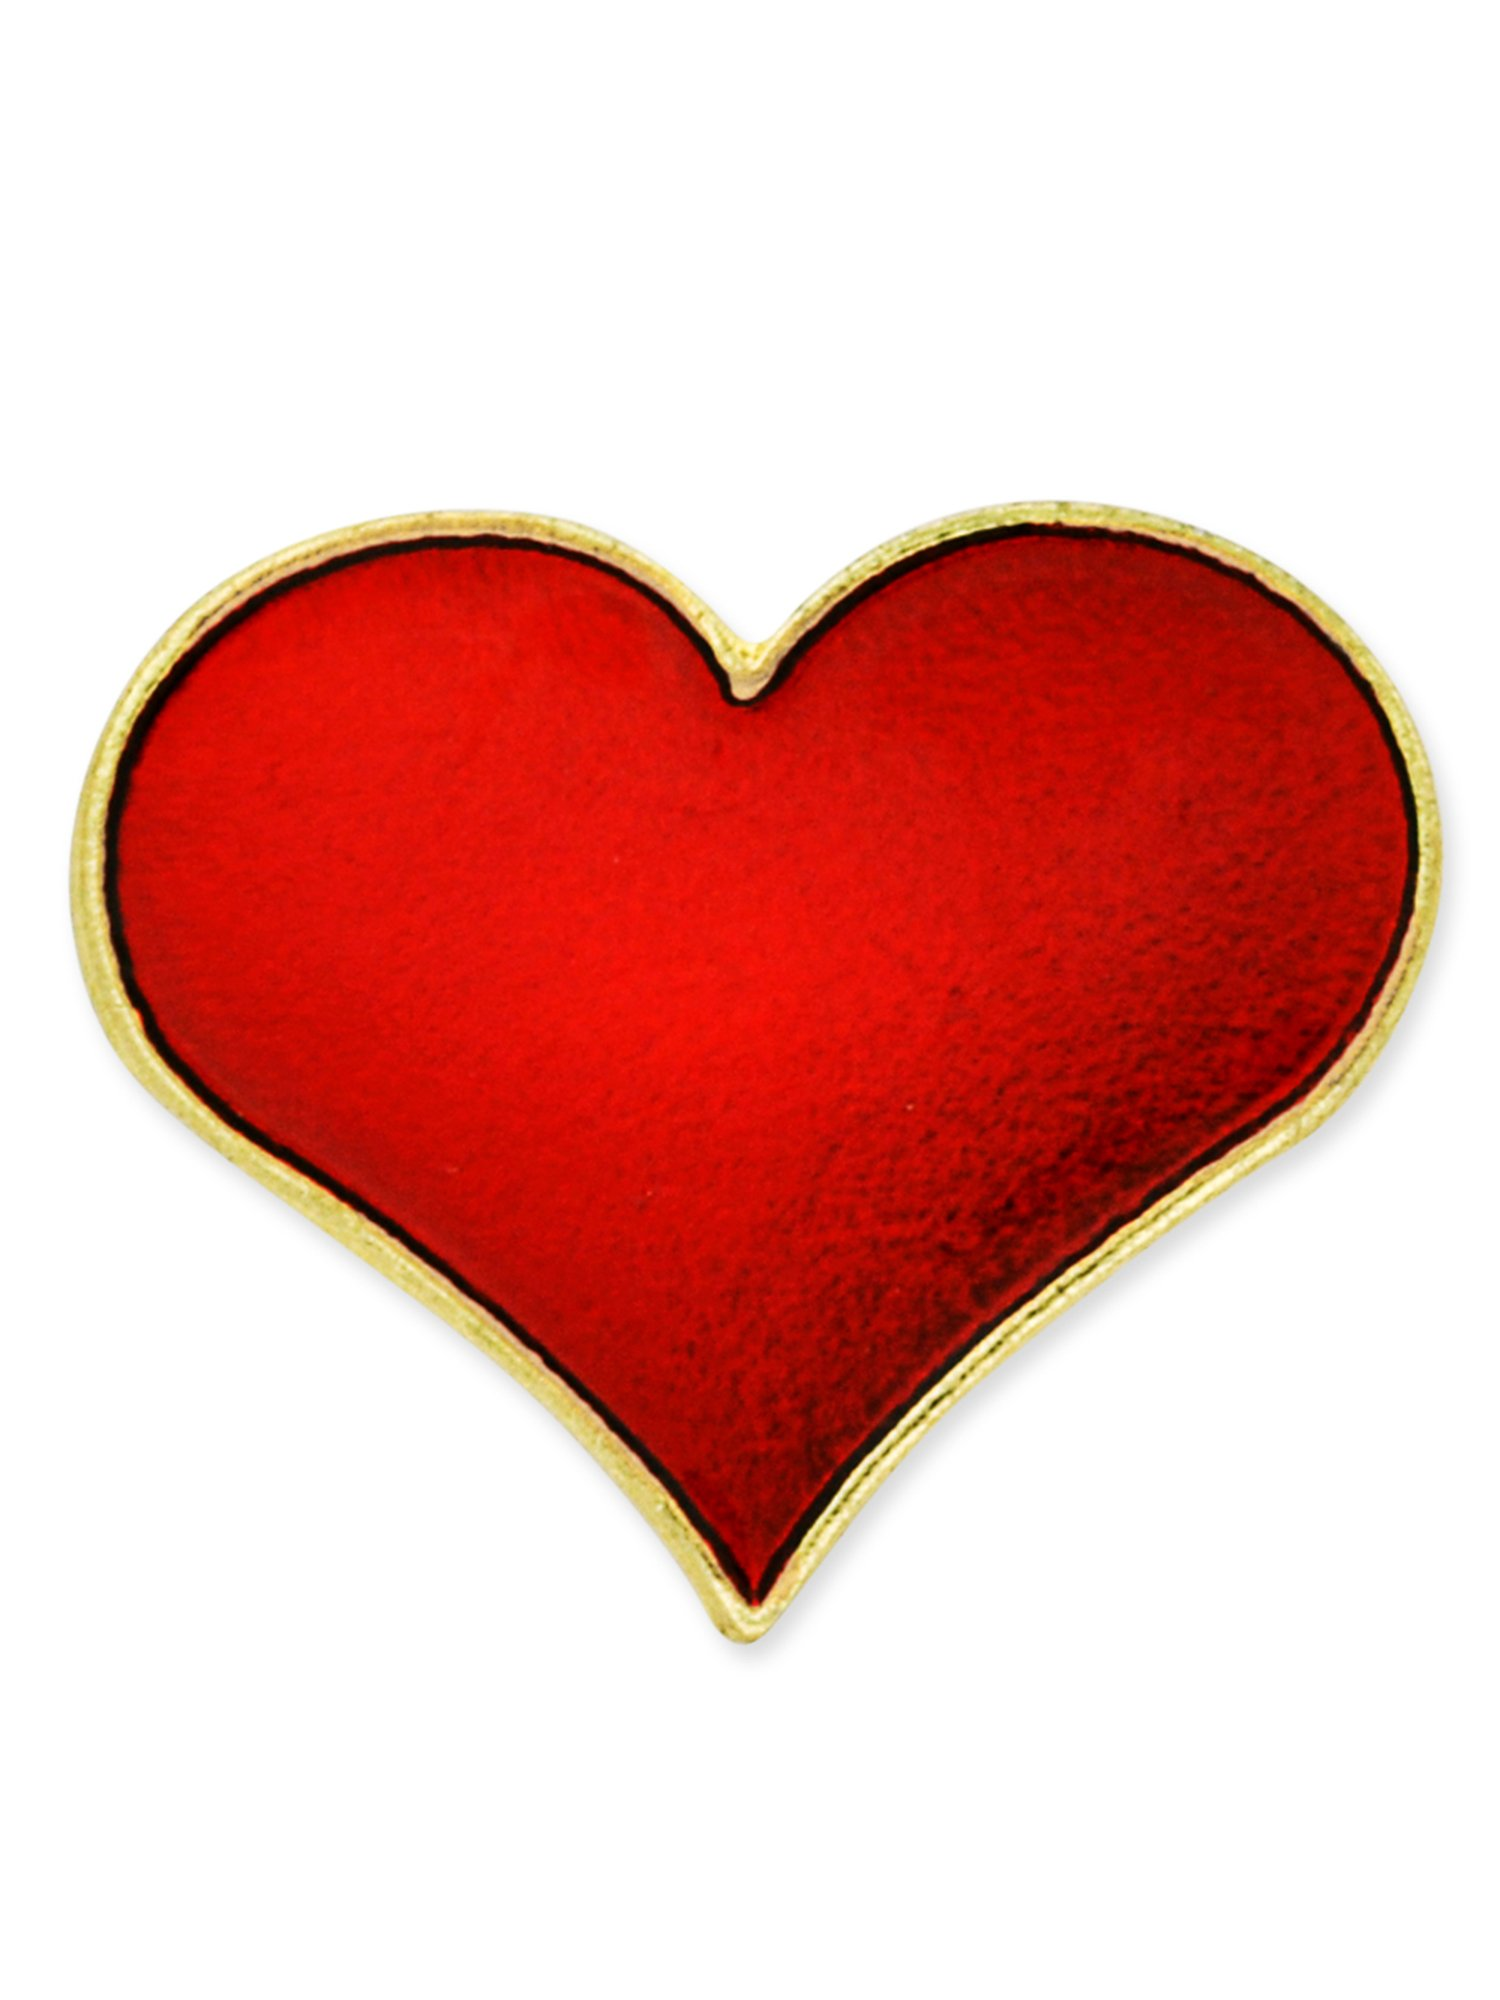 PinMart Red Heart Gold Plated Valentine's Day Enamel Lapel Pin 3/4''